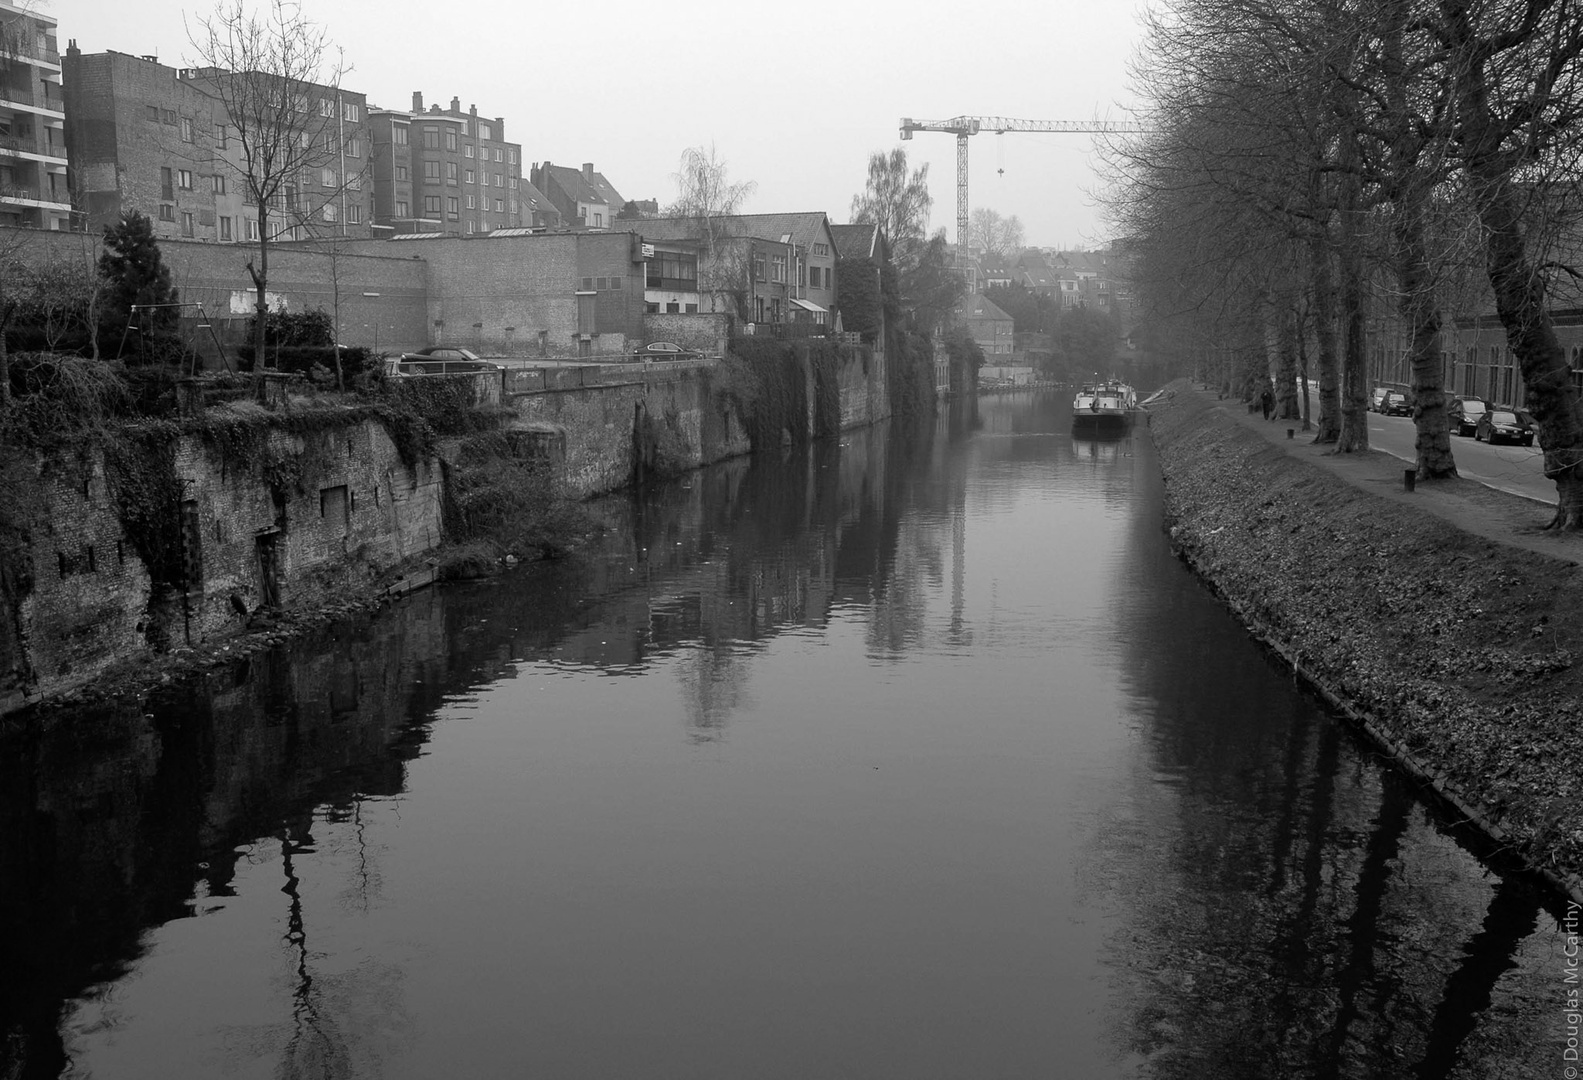 From the bridge, Gent